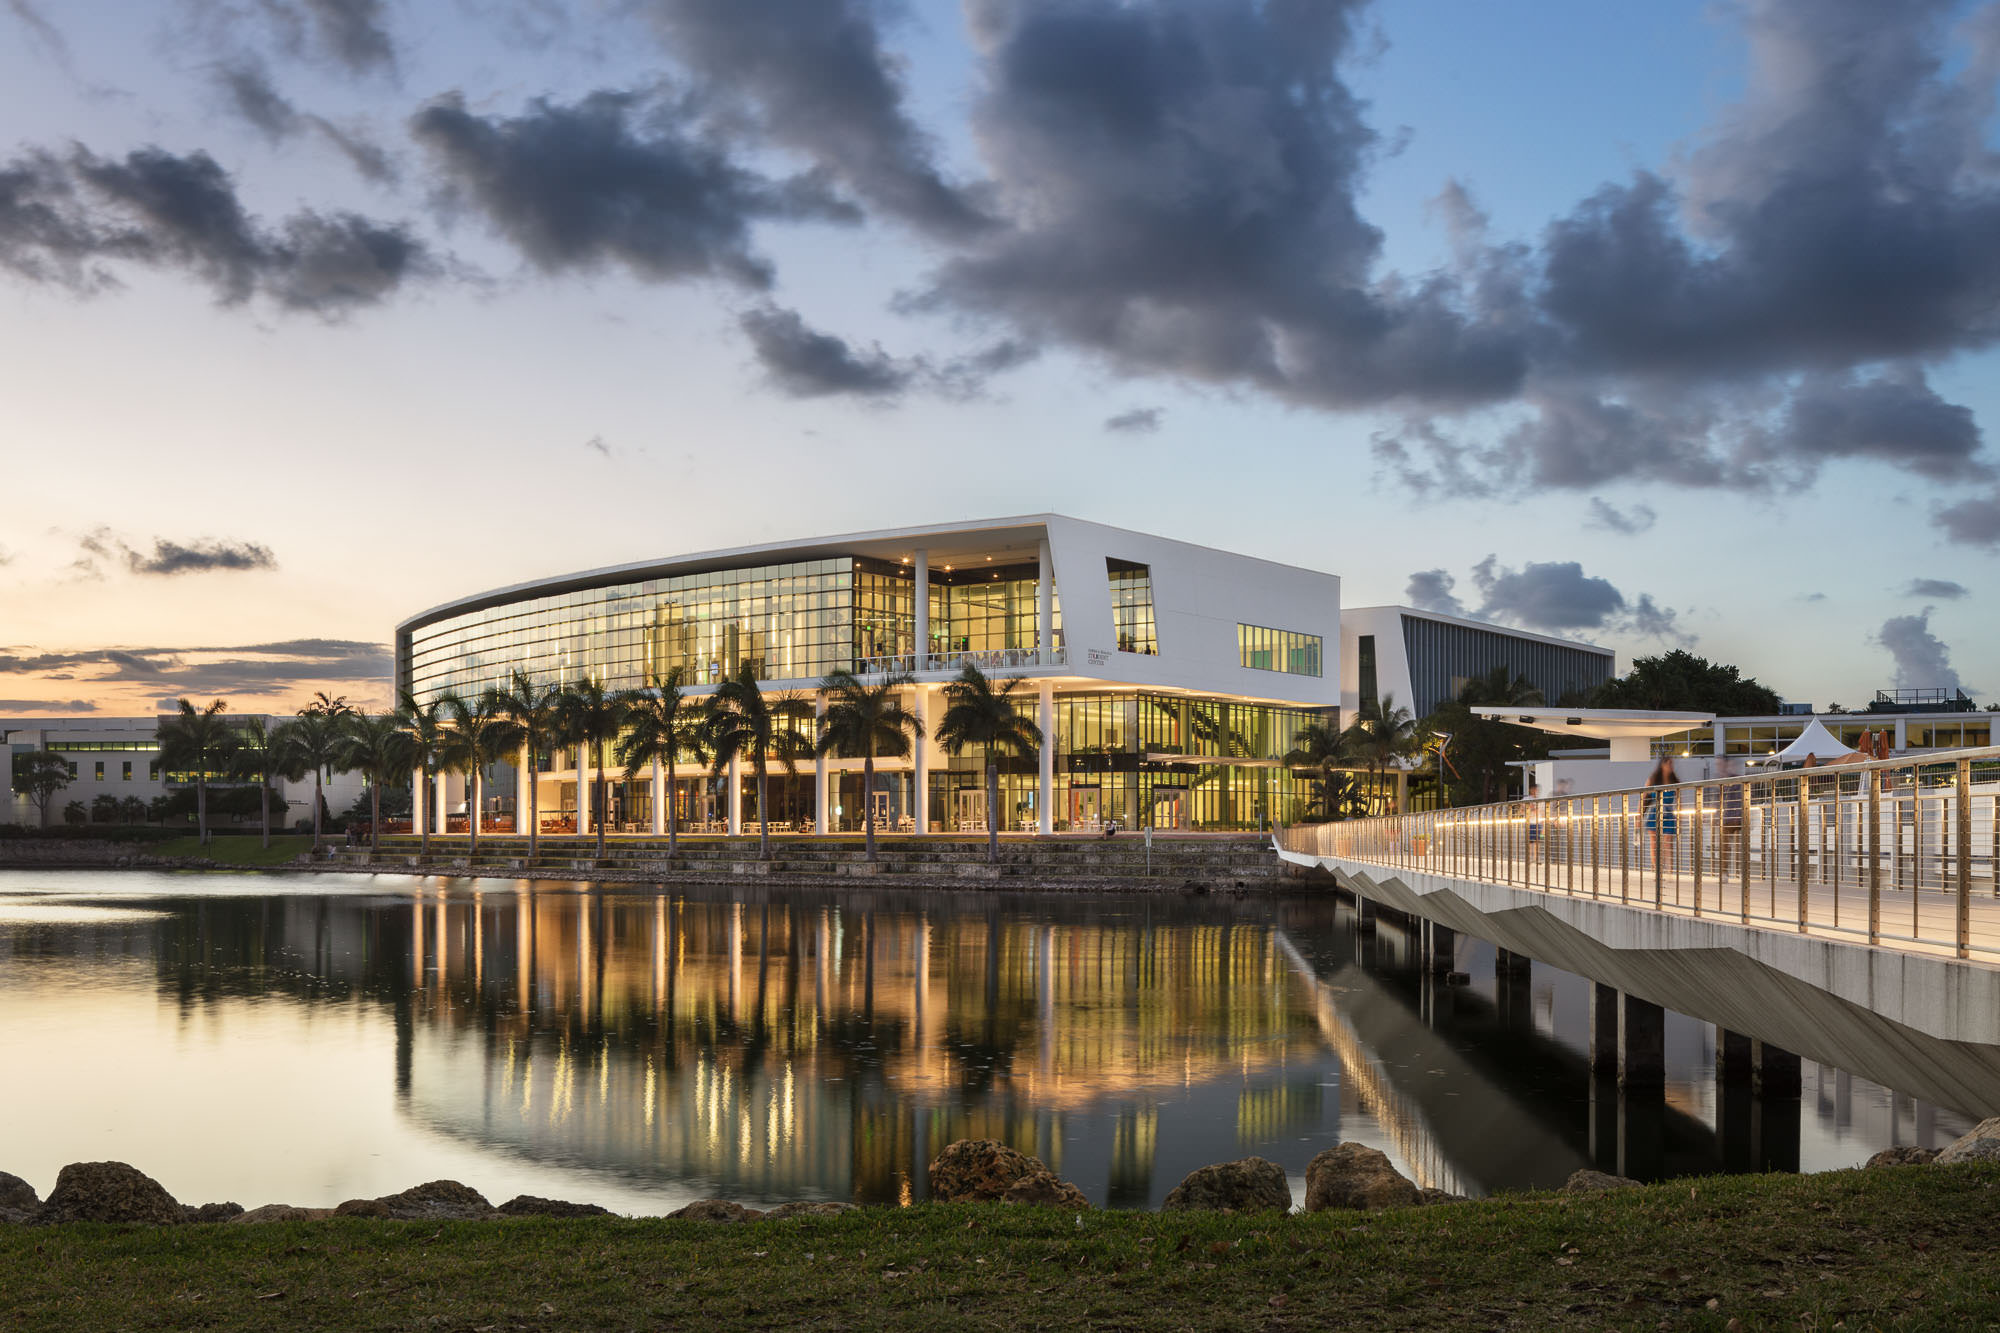 University of Miami Student Center, Miami, FL - Arquitectonica